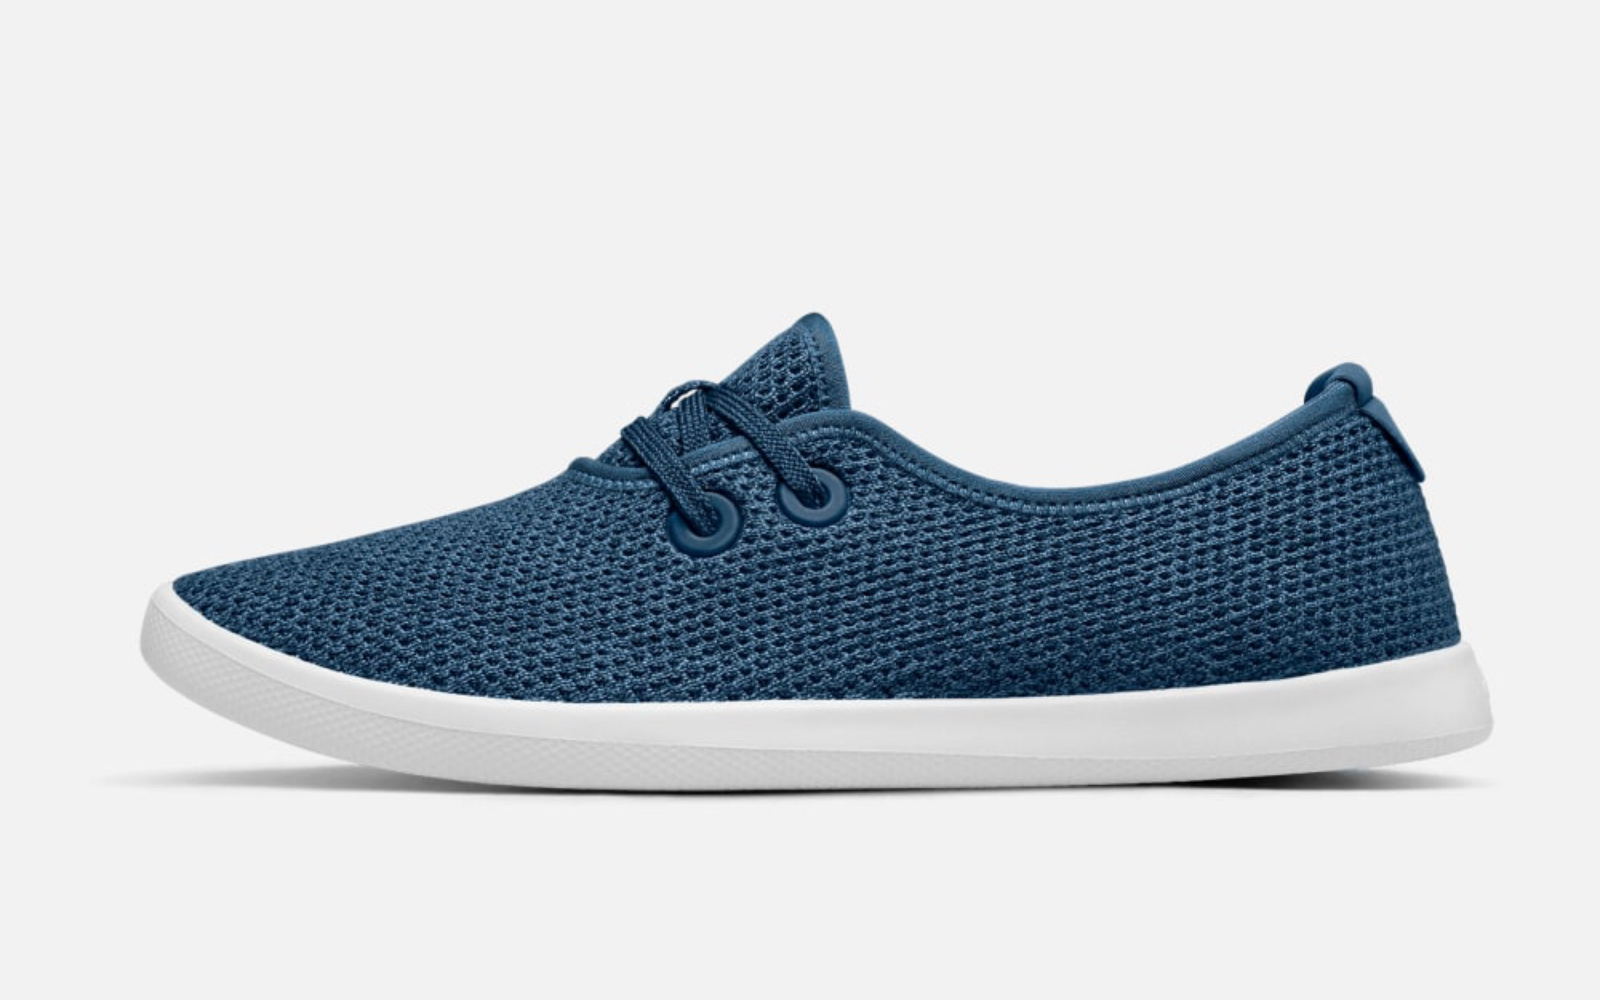 Allbirds Tree Skippers in Twilight (White Sole)